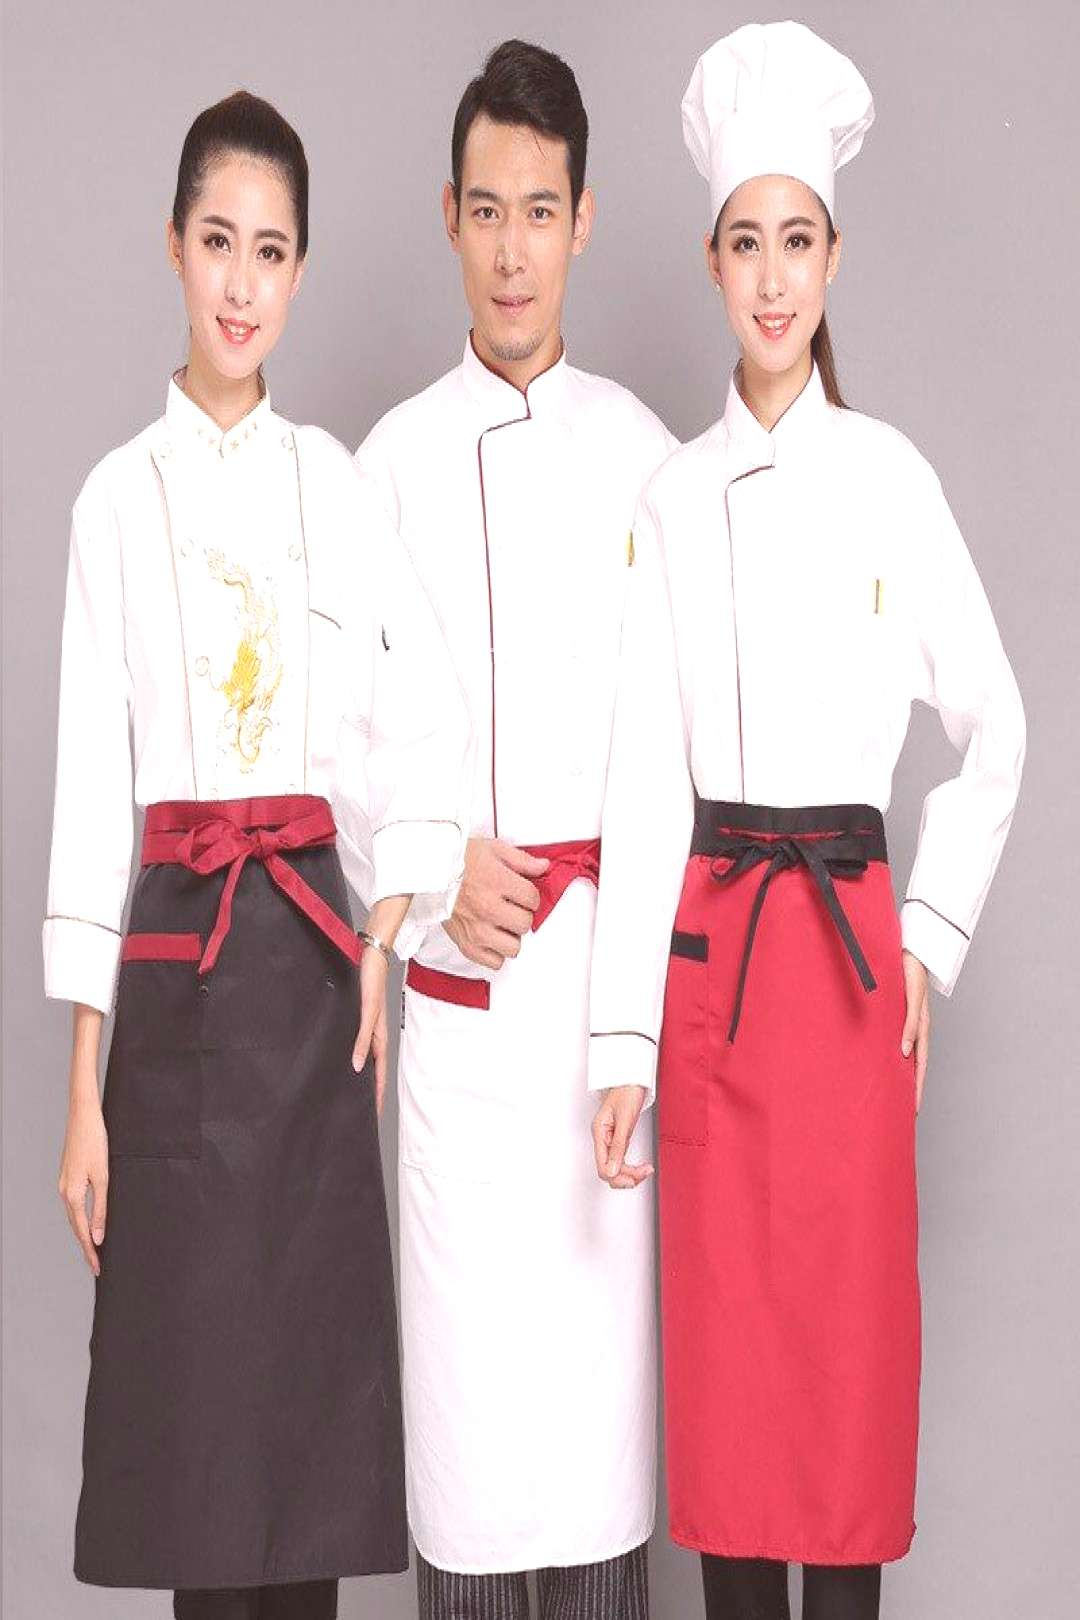 Catering Equipment Chef Aprons Kitchen Accessory Bibs for Women Men Food Service Restaurants Brand